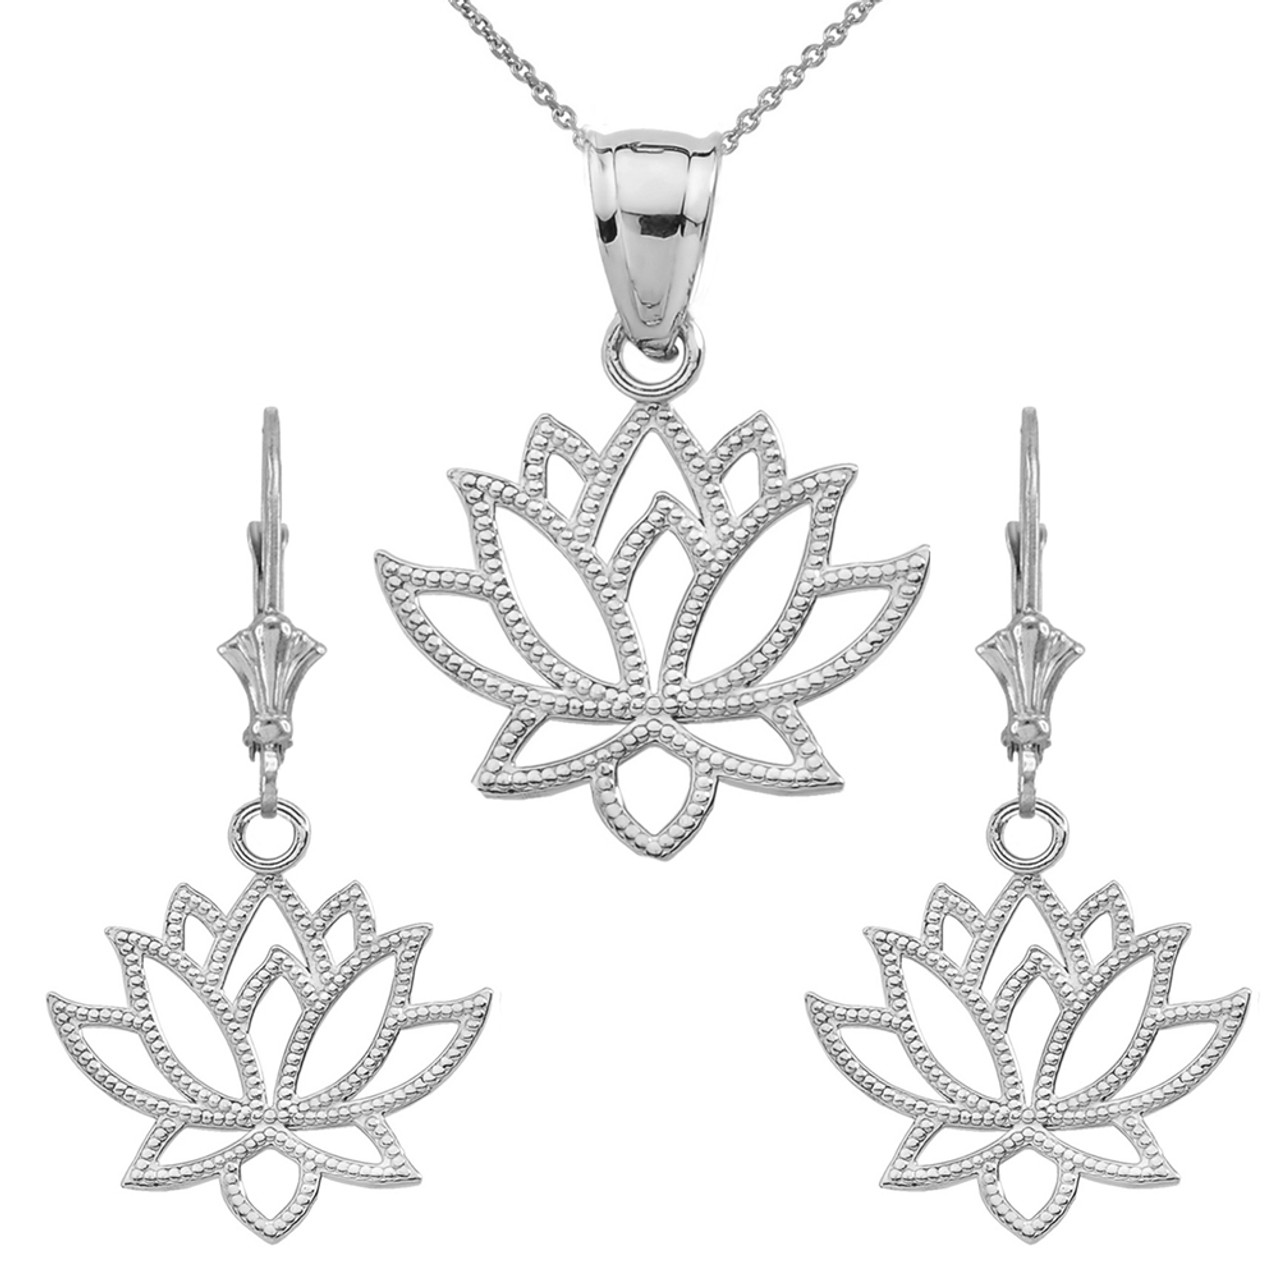 Lotus Flower Pendant Necklace Set In Sterling Silver